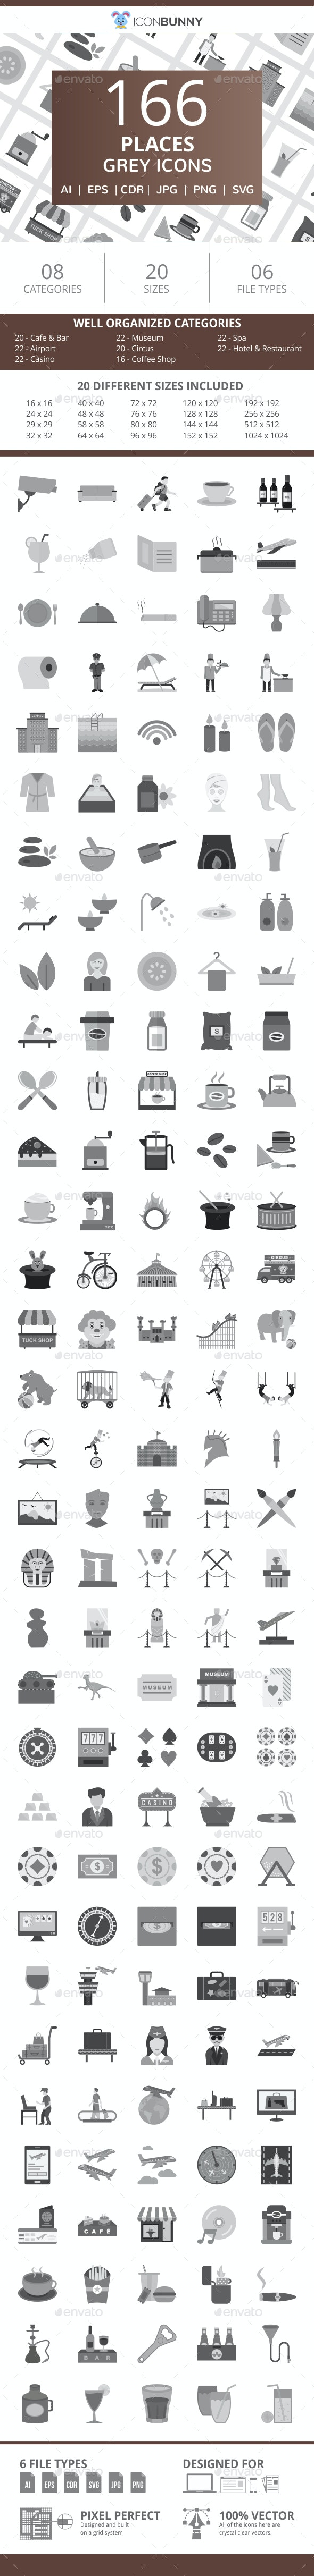 166 Places Flat Greyscale Icons - Icons